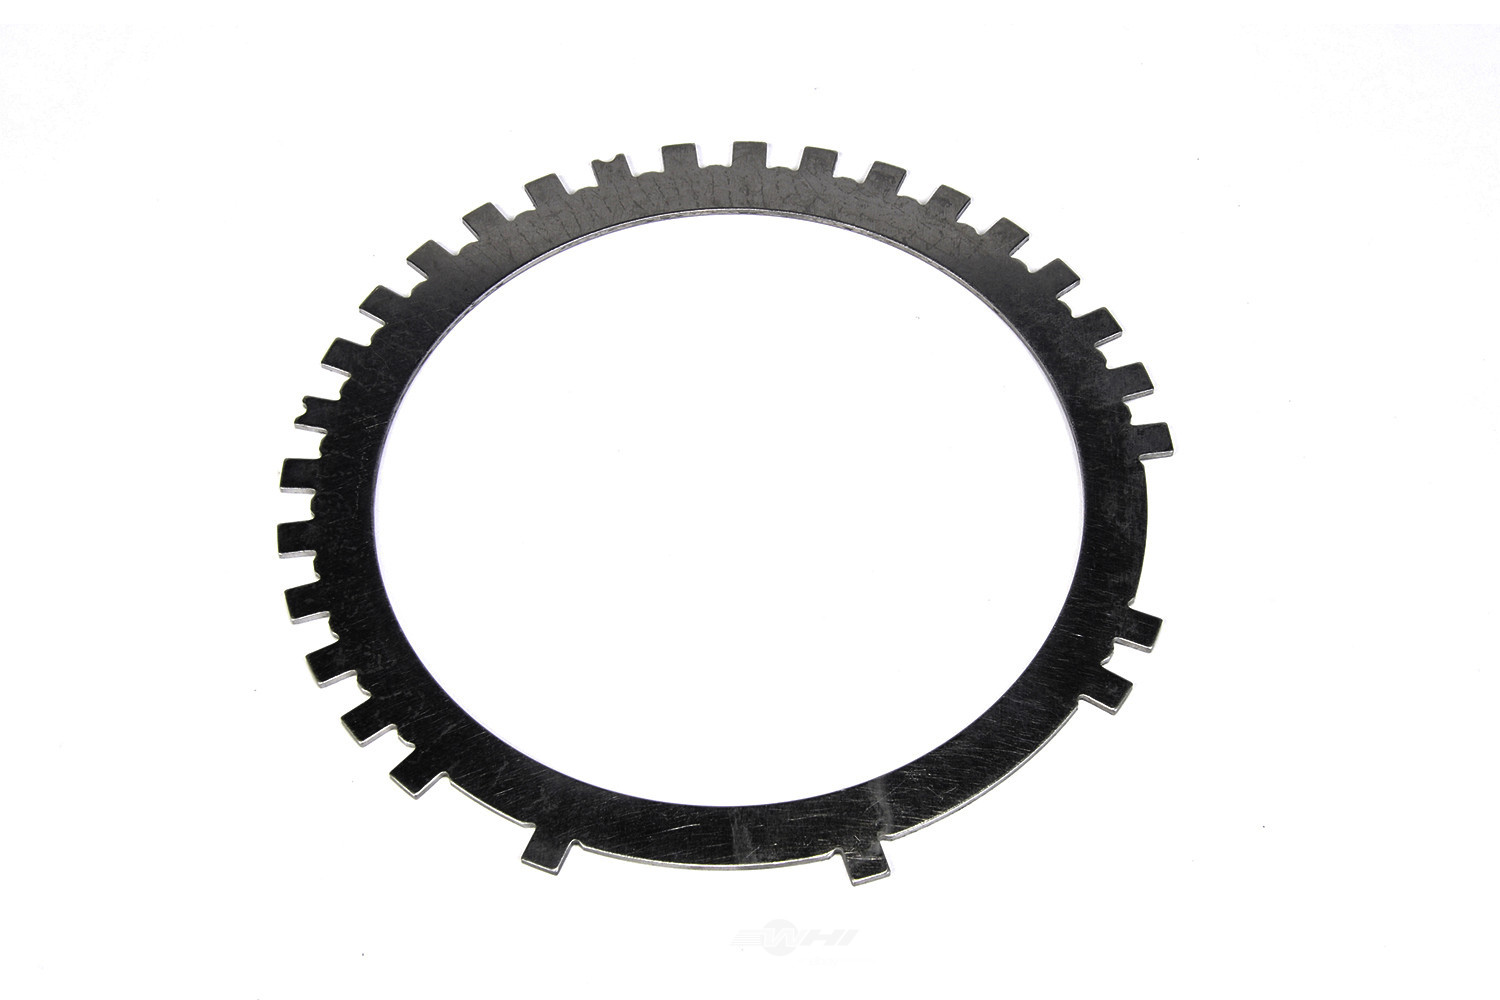 ACDELCO GM ORIGINAL EQUIPMENT - Transmission Clutch Friction Plate - DCB 24277126